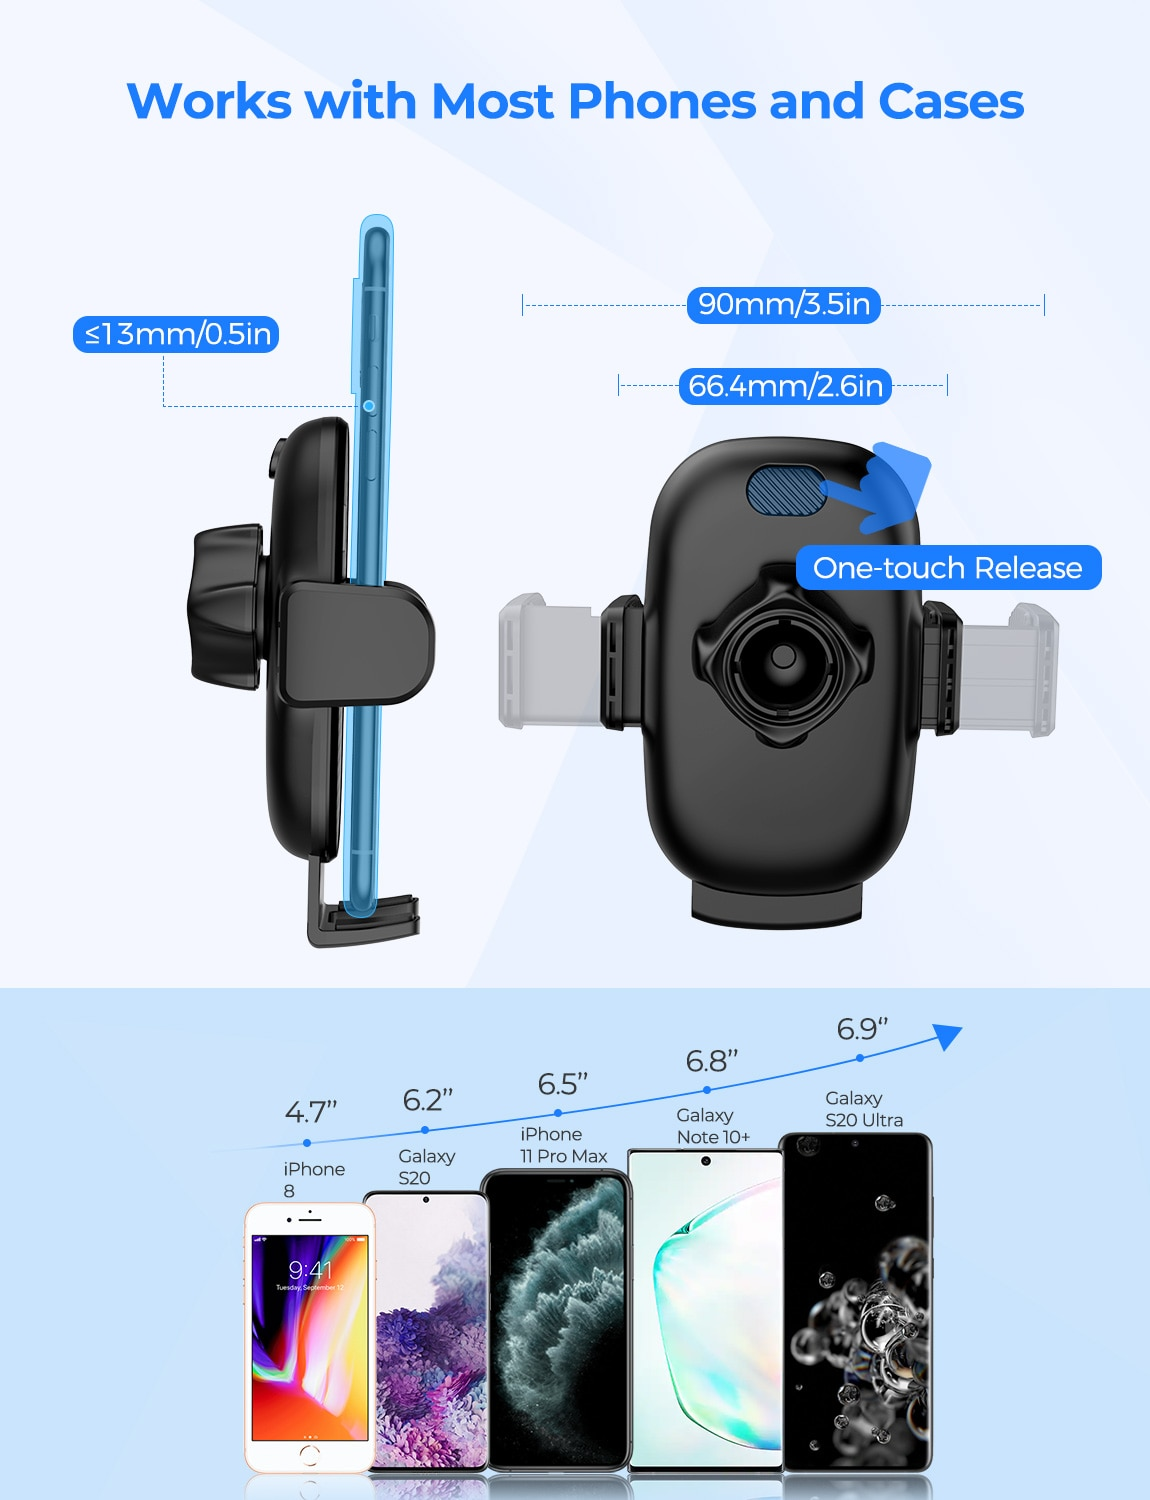 H3e2f29cf0b654cd6b52c46ab313dbcccU - MPOW CA158 Phone Mount Adjustable Cup Holder Car Mount with Long Gooseneck 360 Degrees Rotation Compatible with iPhone Galaxy